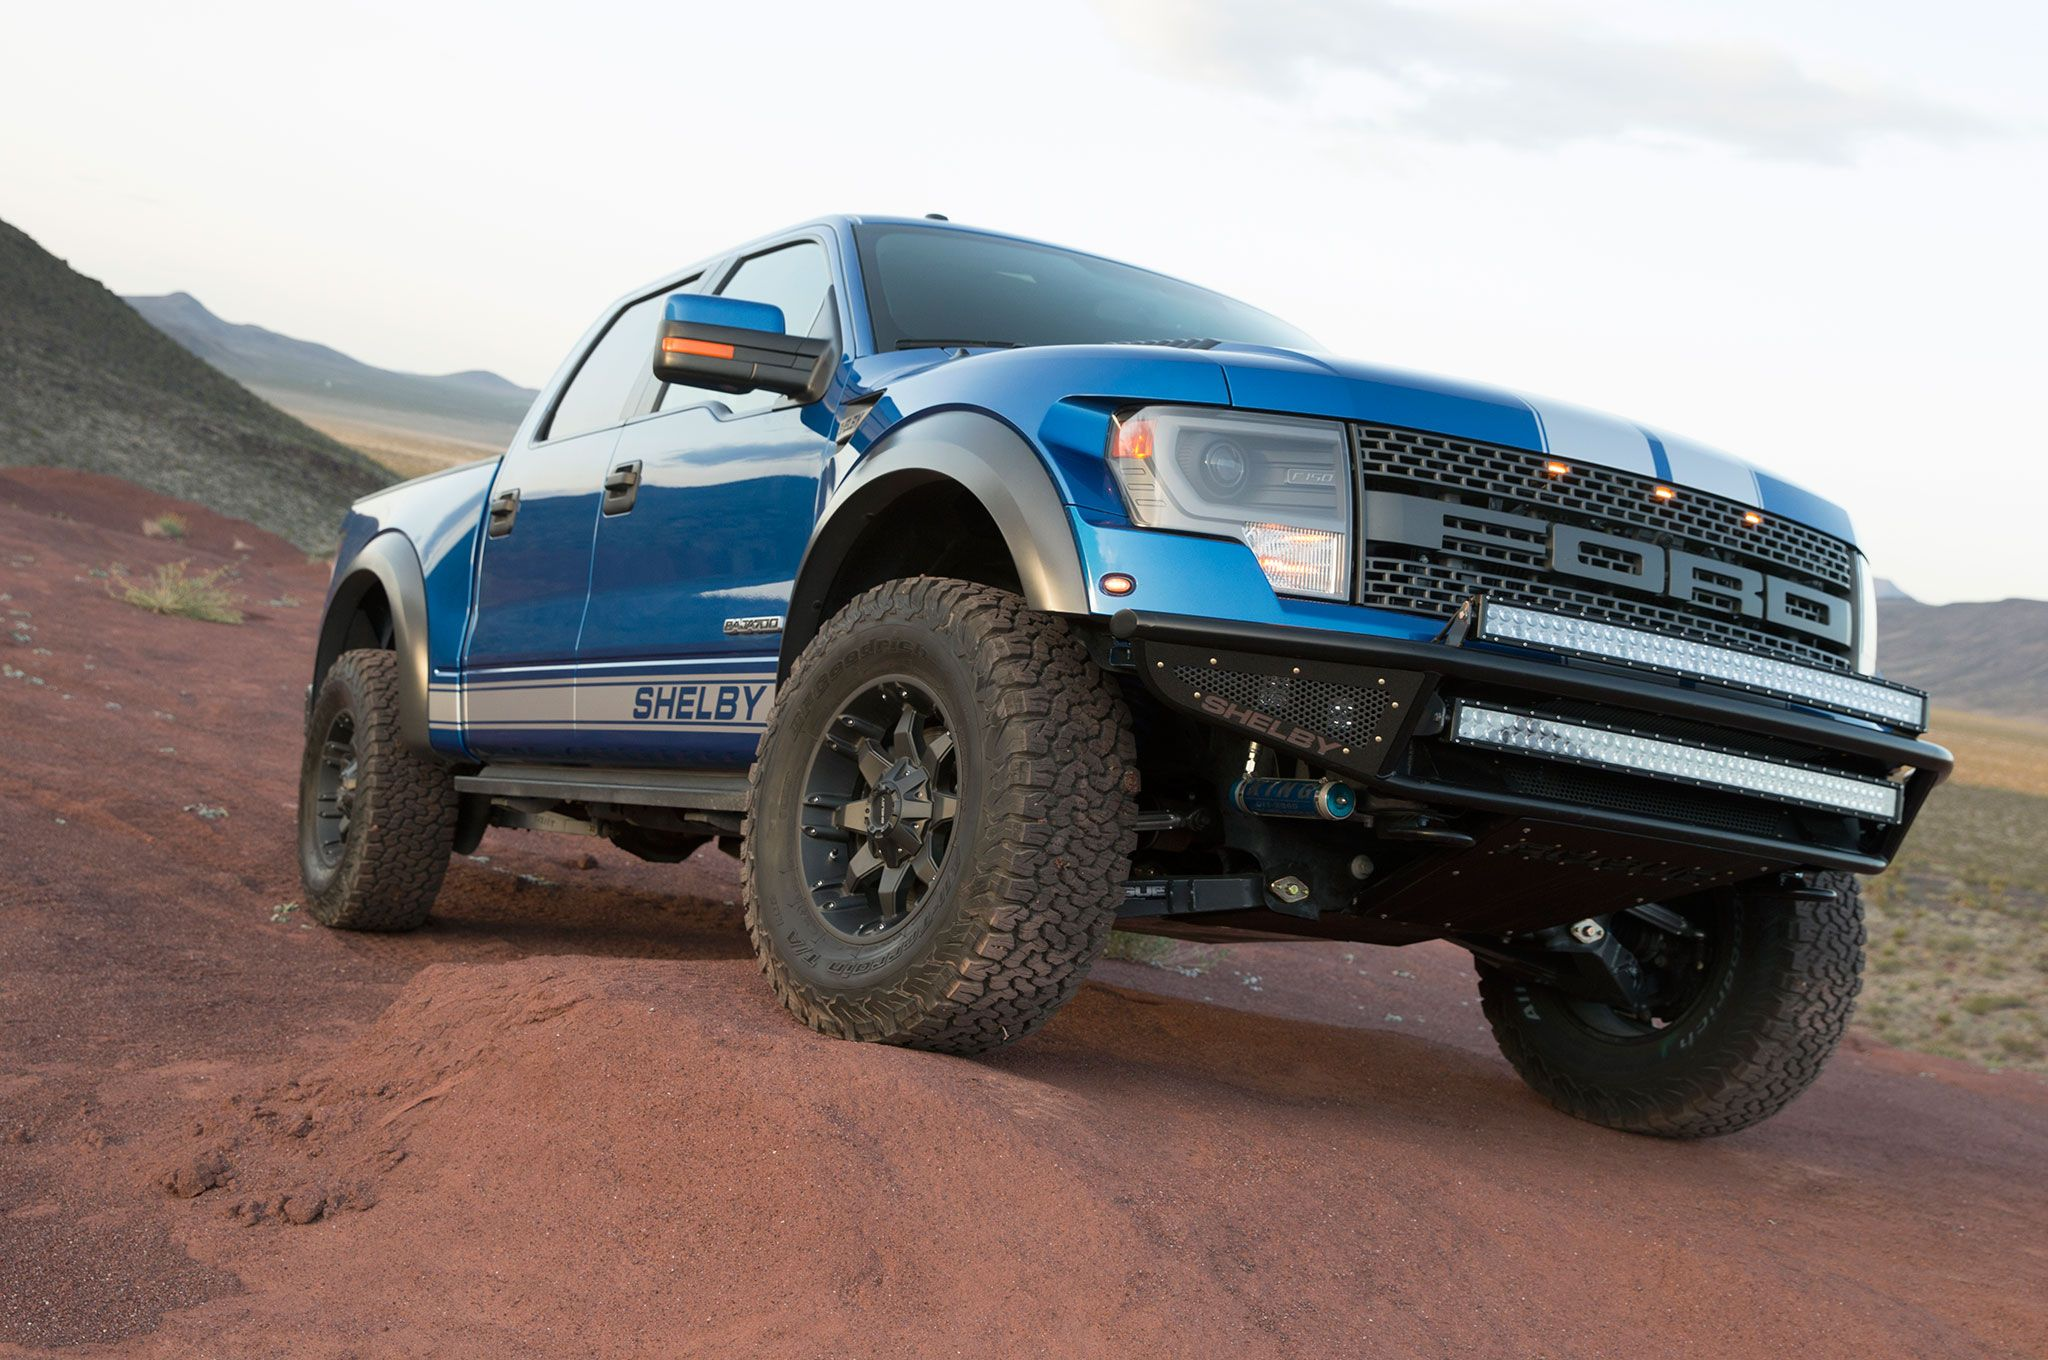 Shelby gives the ford raptor 700 horsepower and stripes for 45 000 ford raptor ford and ford trucks